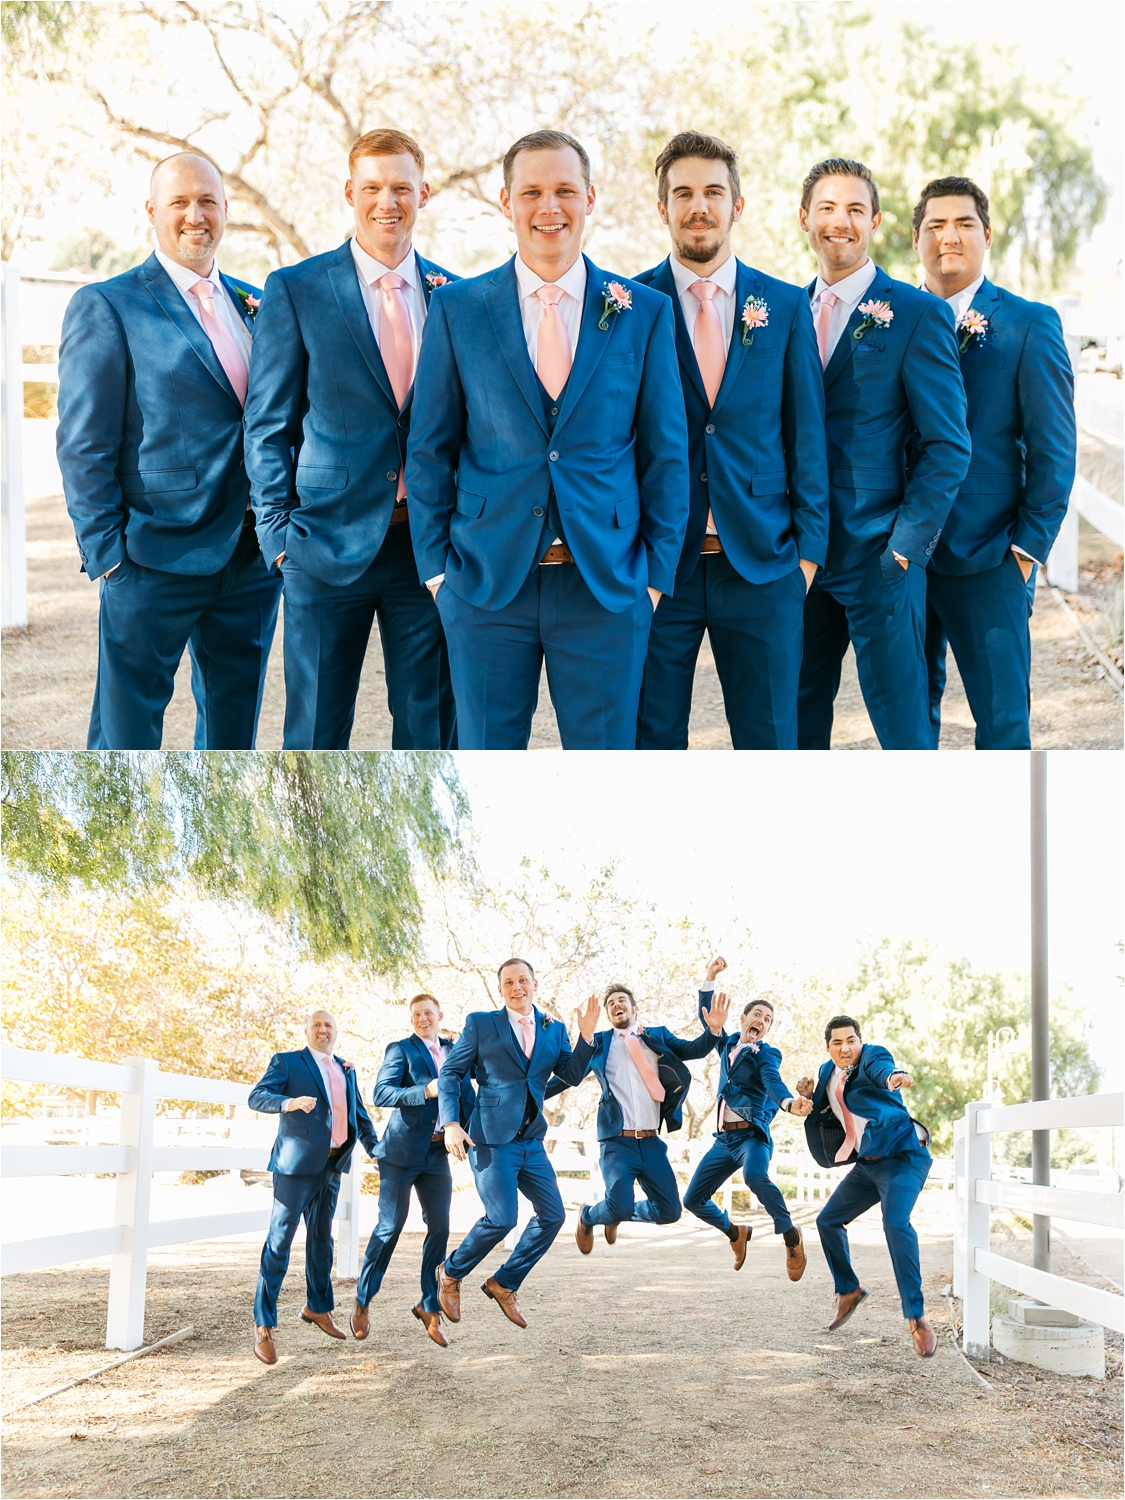 Groom and Groomsmen in blue suits - Groom and Groomsmen Photos - https://brittneyhannonphotography.com